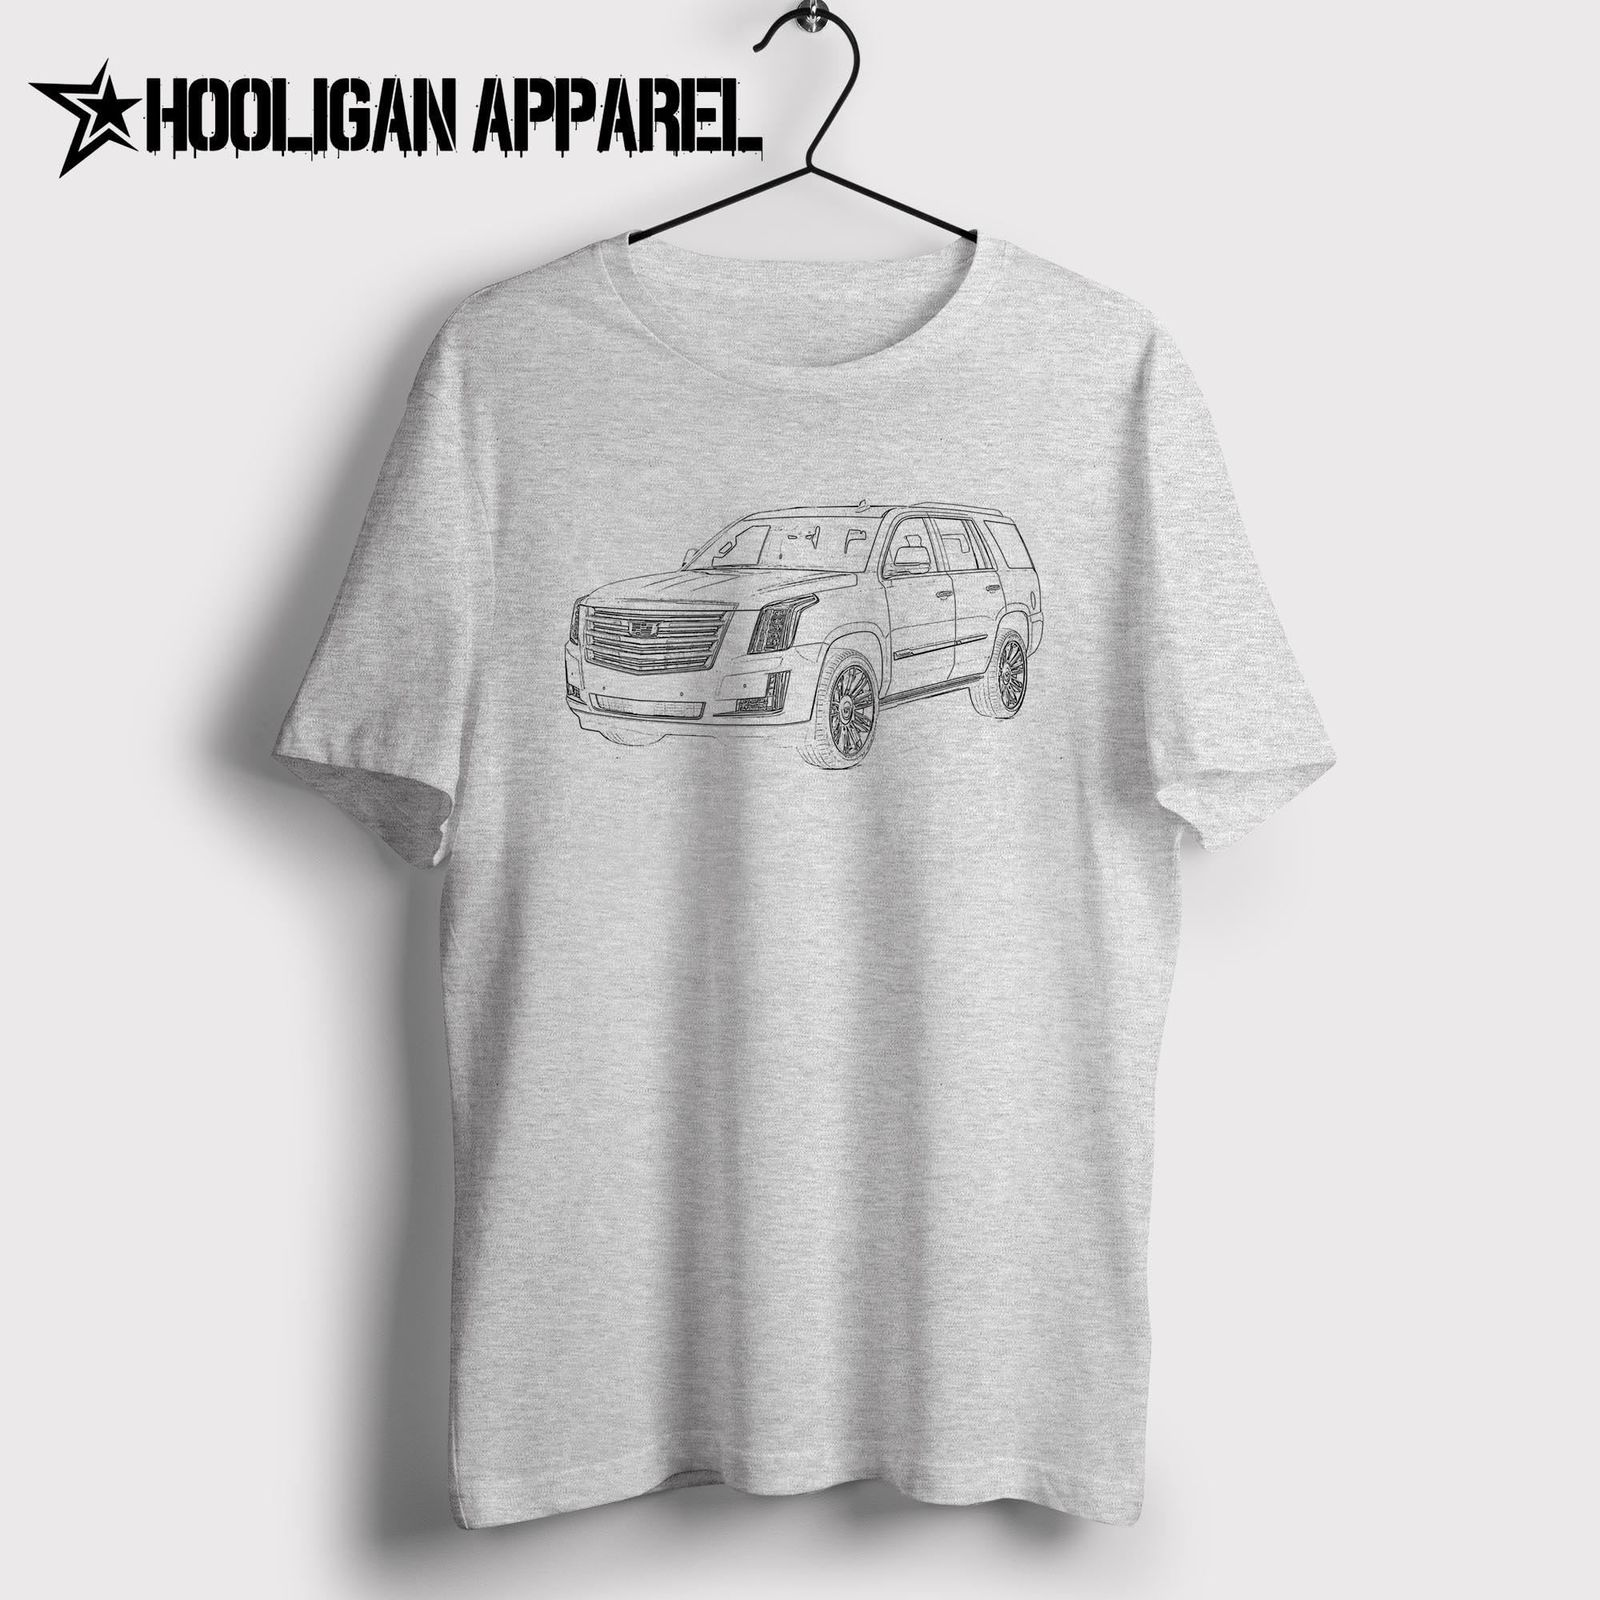 New Summer Fashion Simple Short-Sleeved Cotton T-Shirt Classic American Car Fans Escalade Suv 2016 Inspired Car Bulk T Shirts image